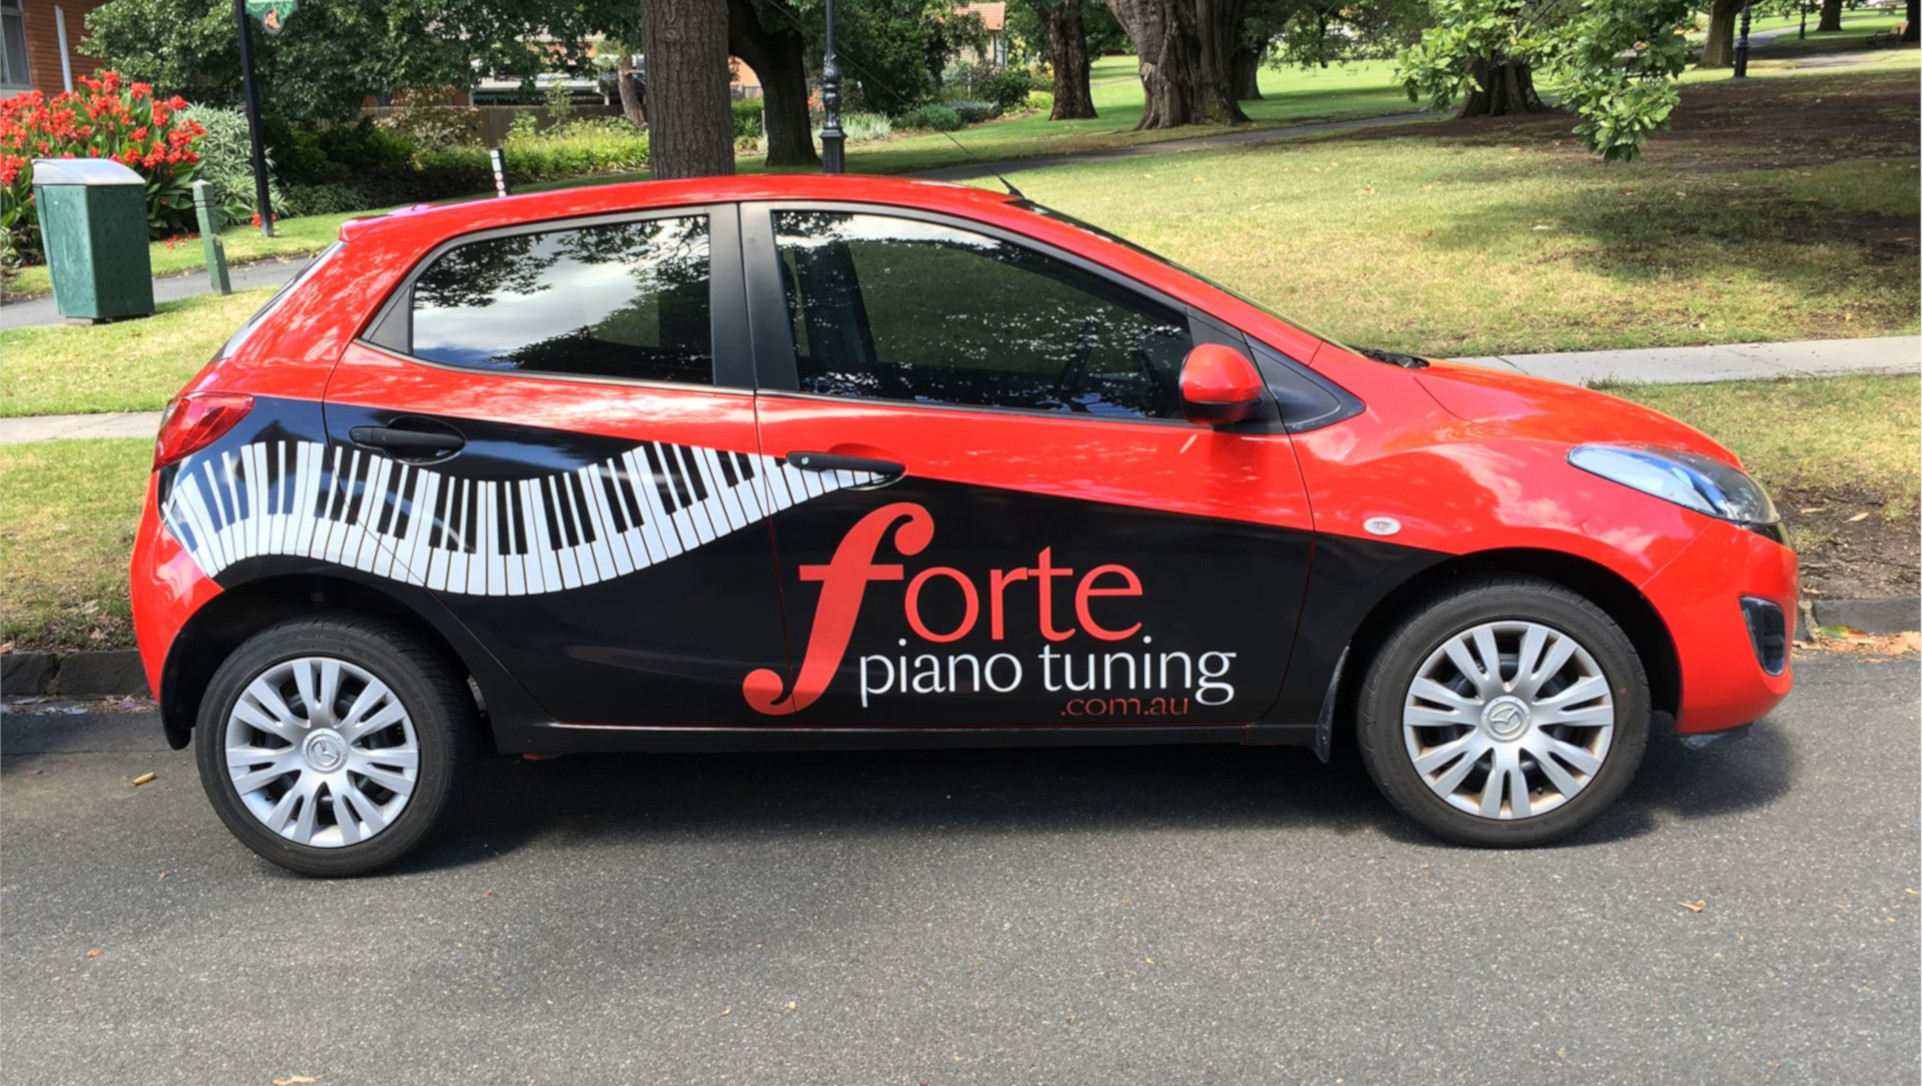 Forte Piano Tuning - 0467 553 088